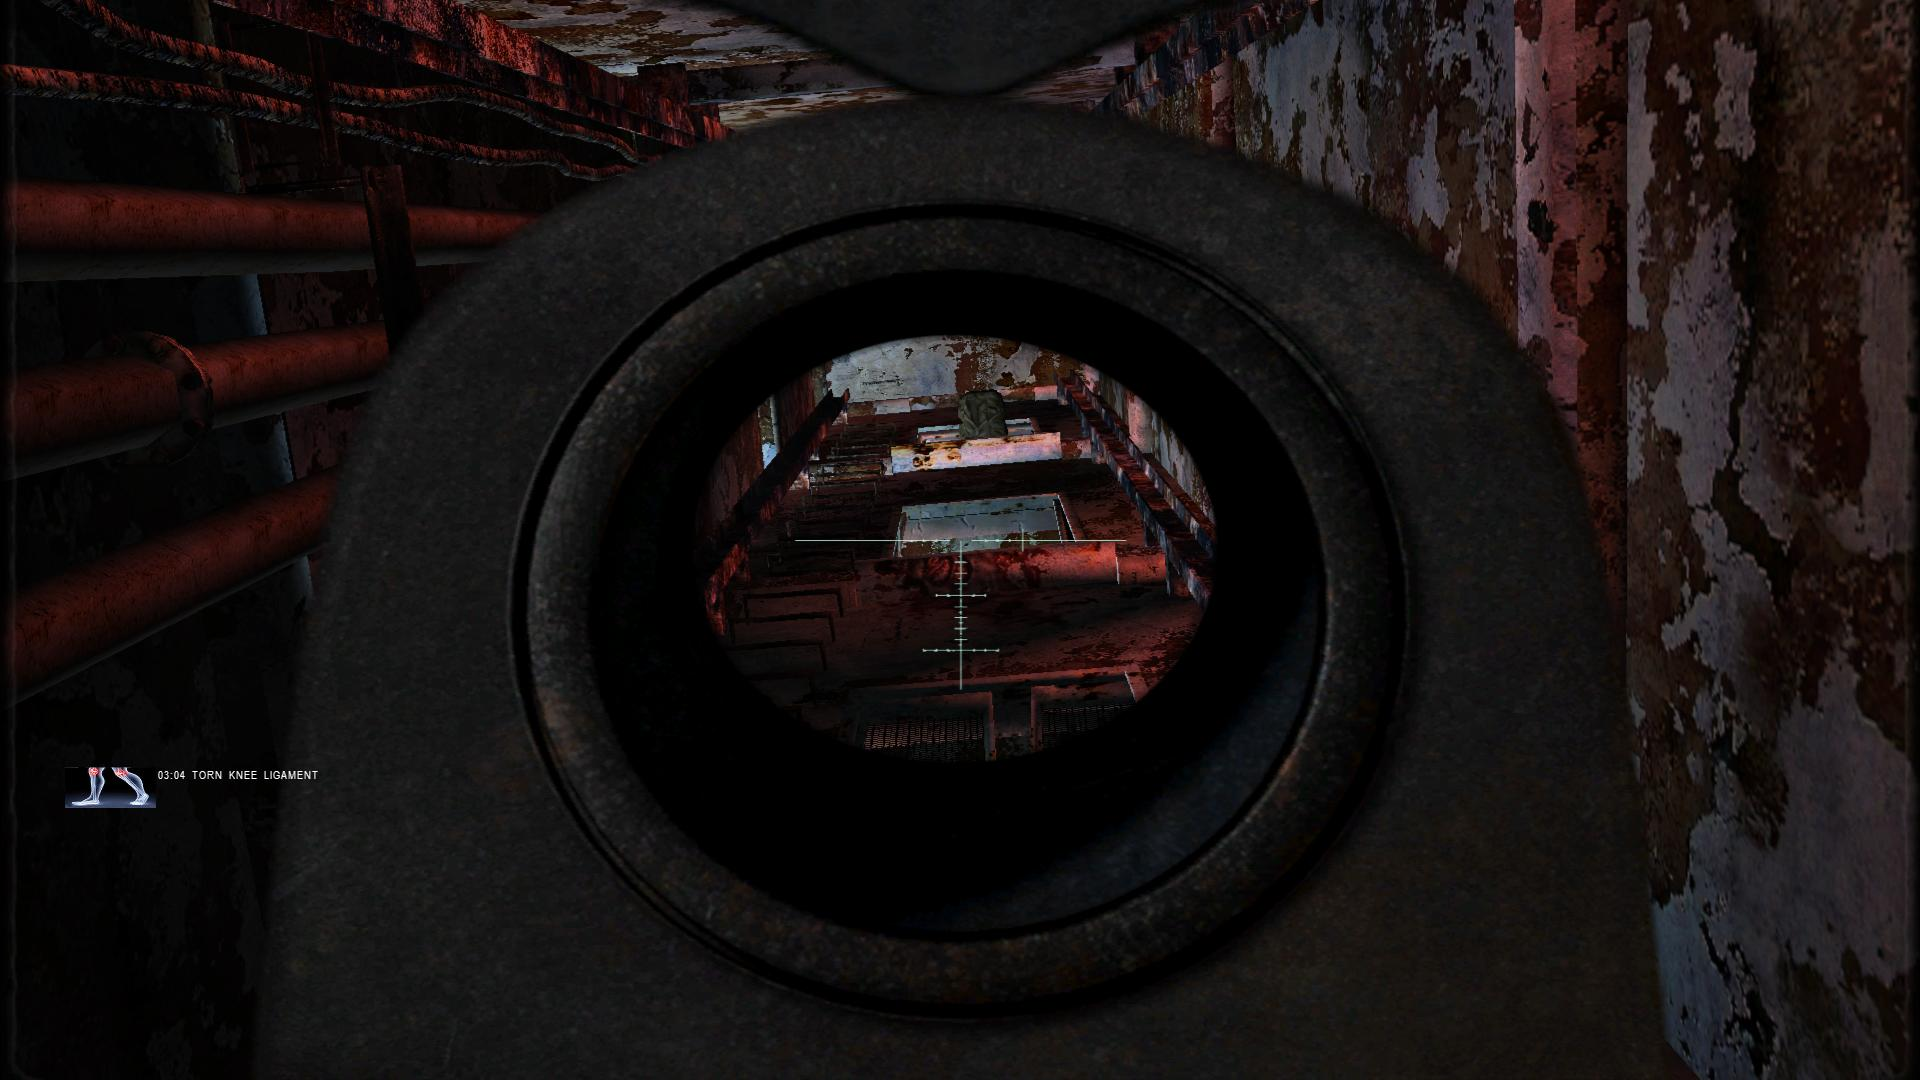 Stuck in the gameplay, Stalker? Let's have a little chat... - Page 4 Ss-jarvis-06-21-20-21-28-31-warlab